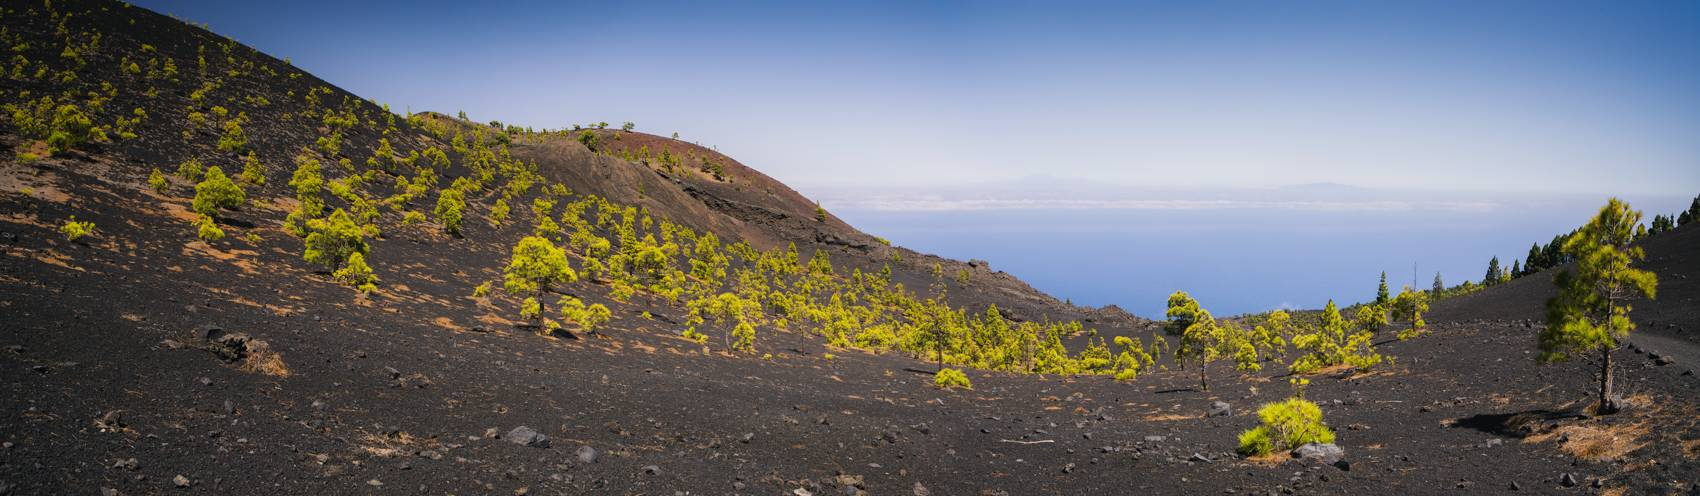 Photo Voyages : Îles Canaries #20